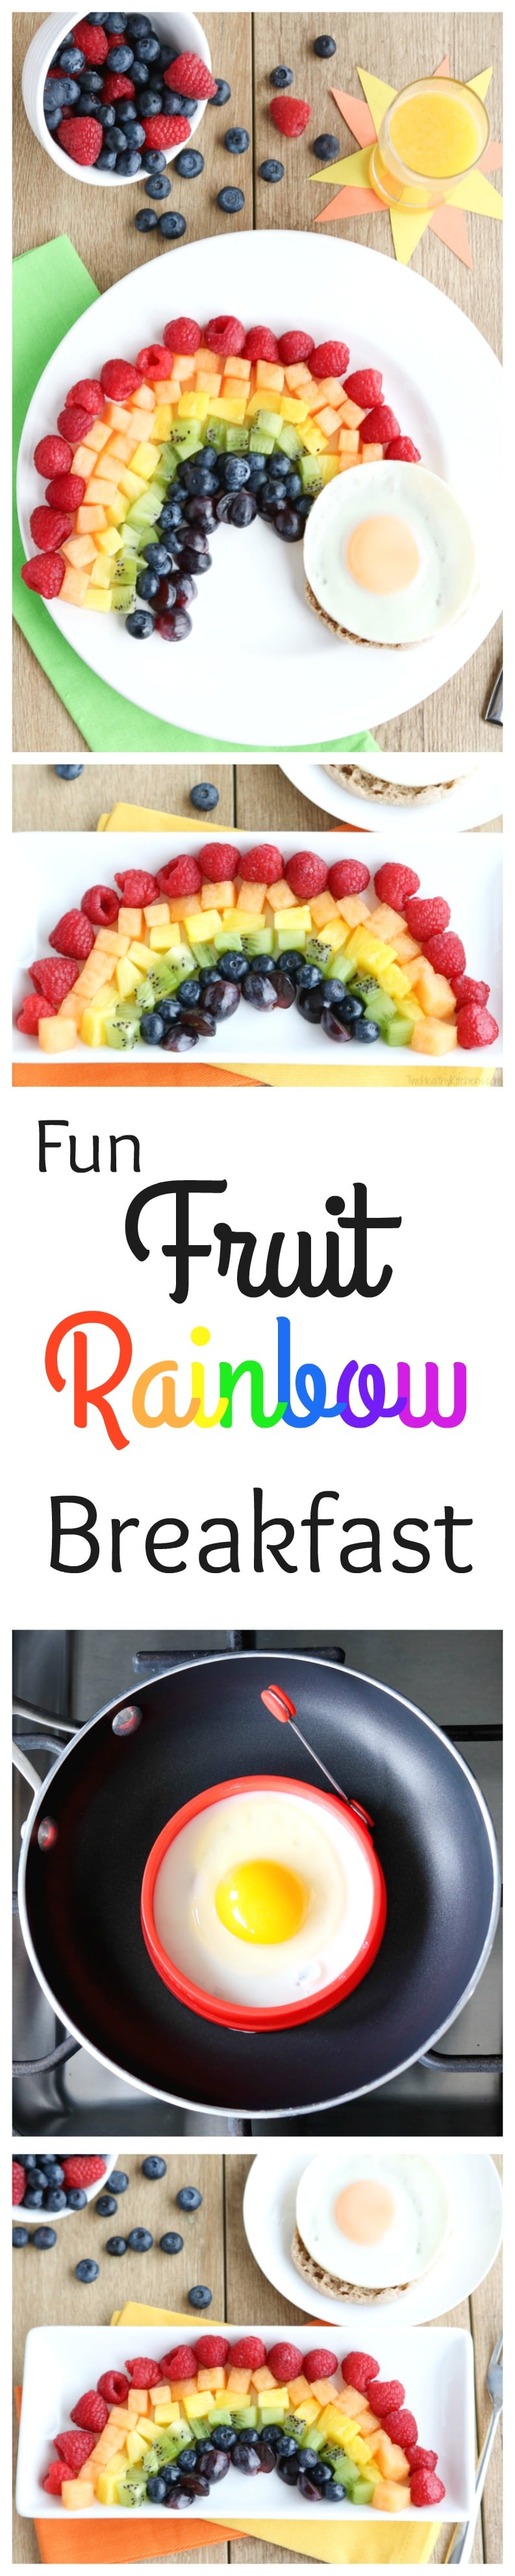 Your kids will love this Fruit Rainbow Breakfast recipe … complete with a pot o' gold! And you'll love all the great nutrition - literally eating a rainbow! A fun, healthy breakfast idea! | www.TwoHealthyKitchens.com